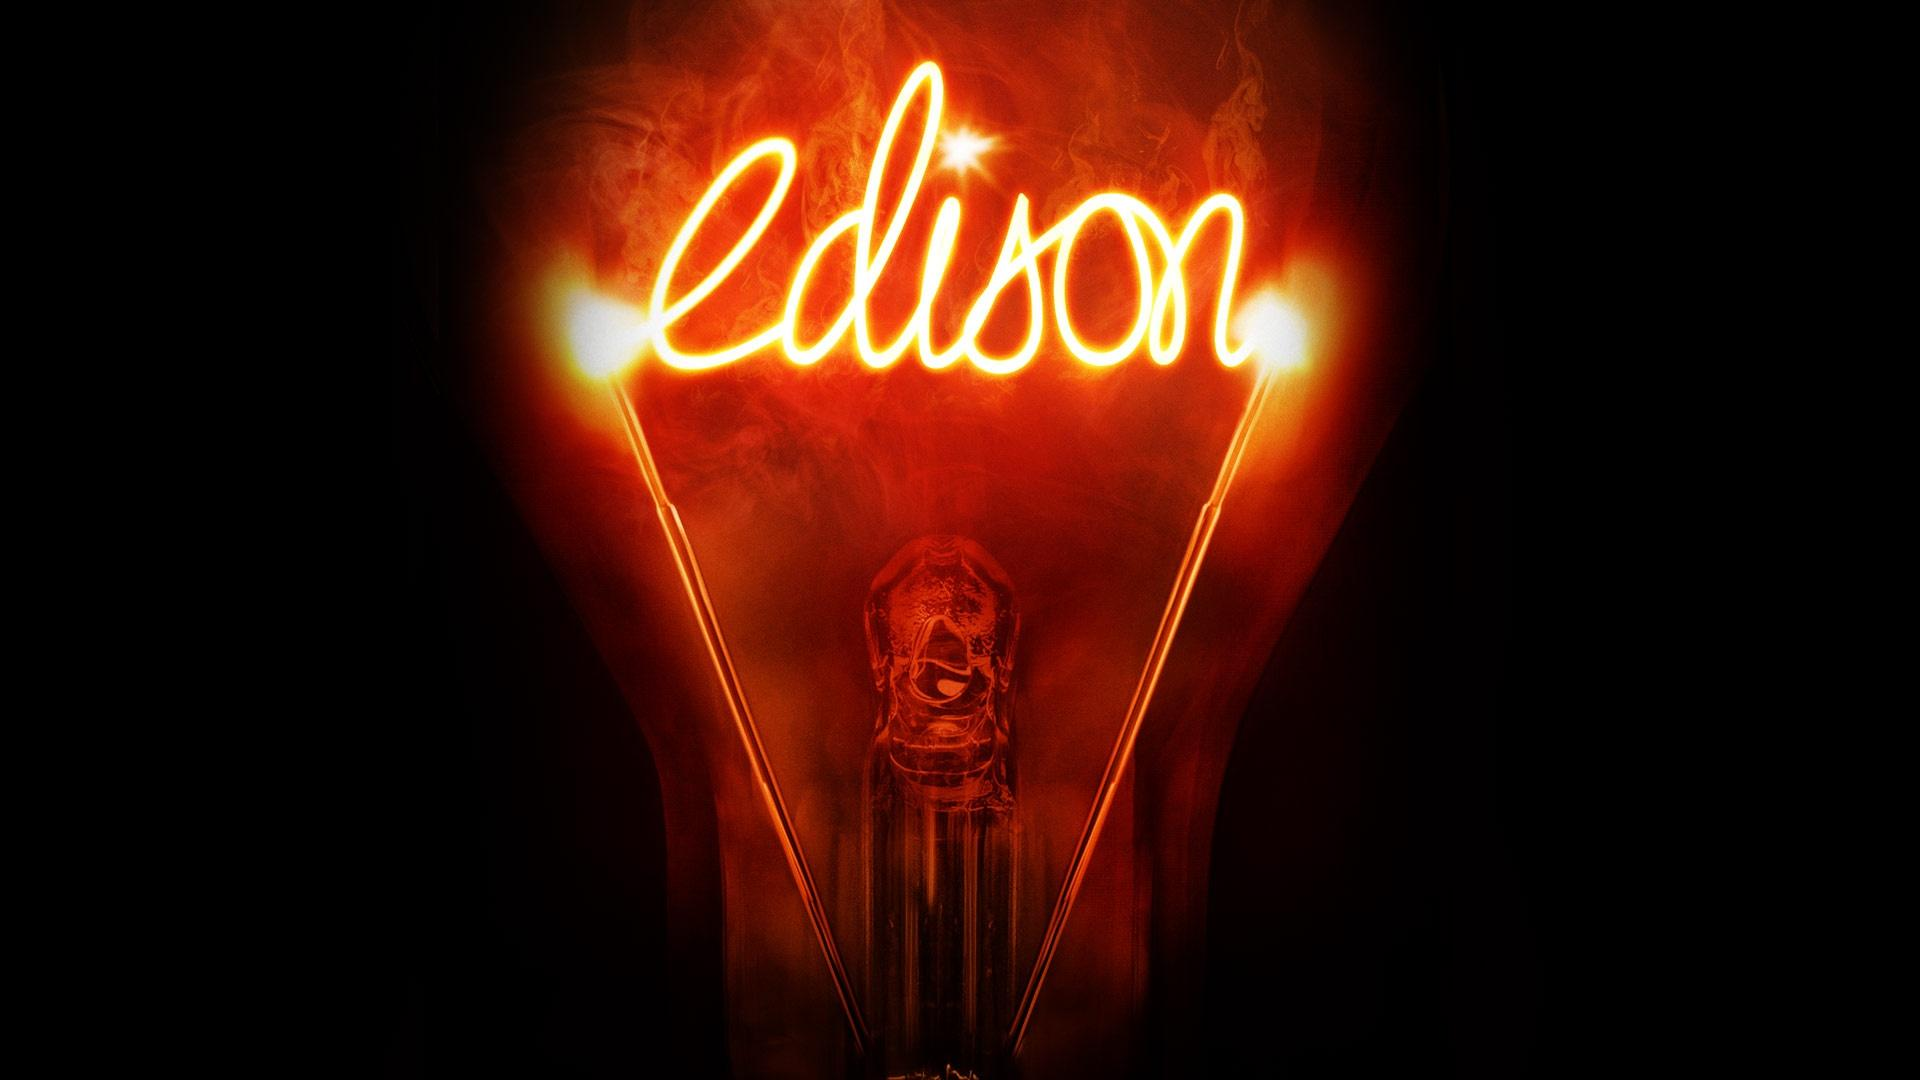 Edison: American Experience - Preview